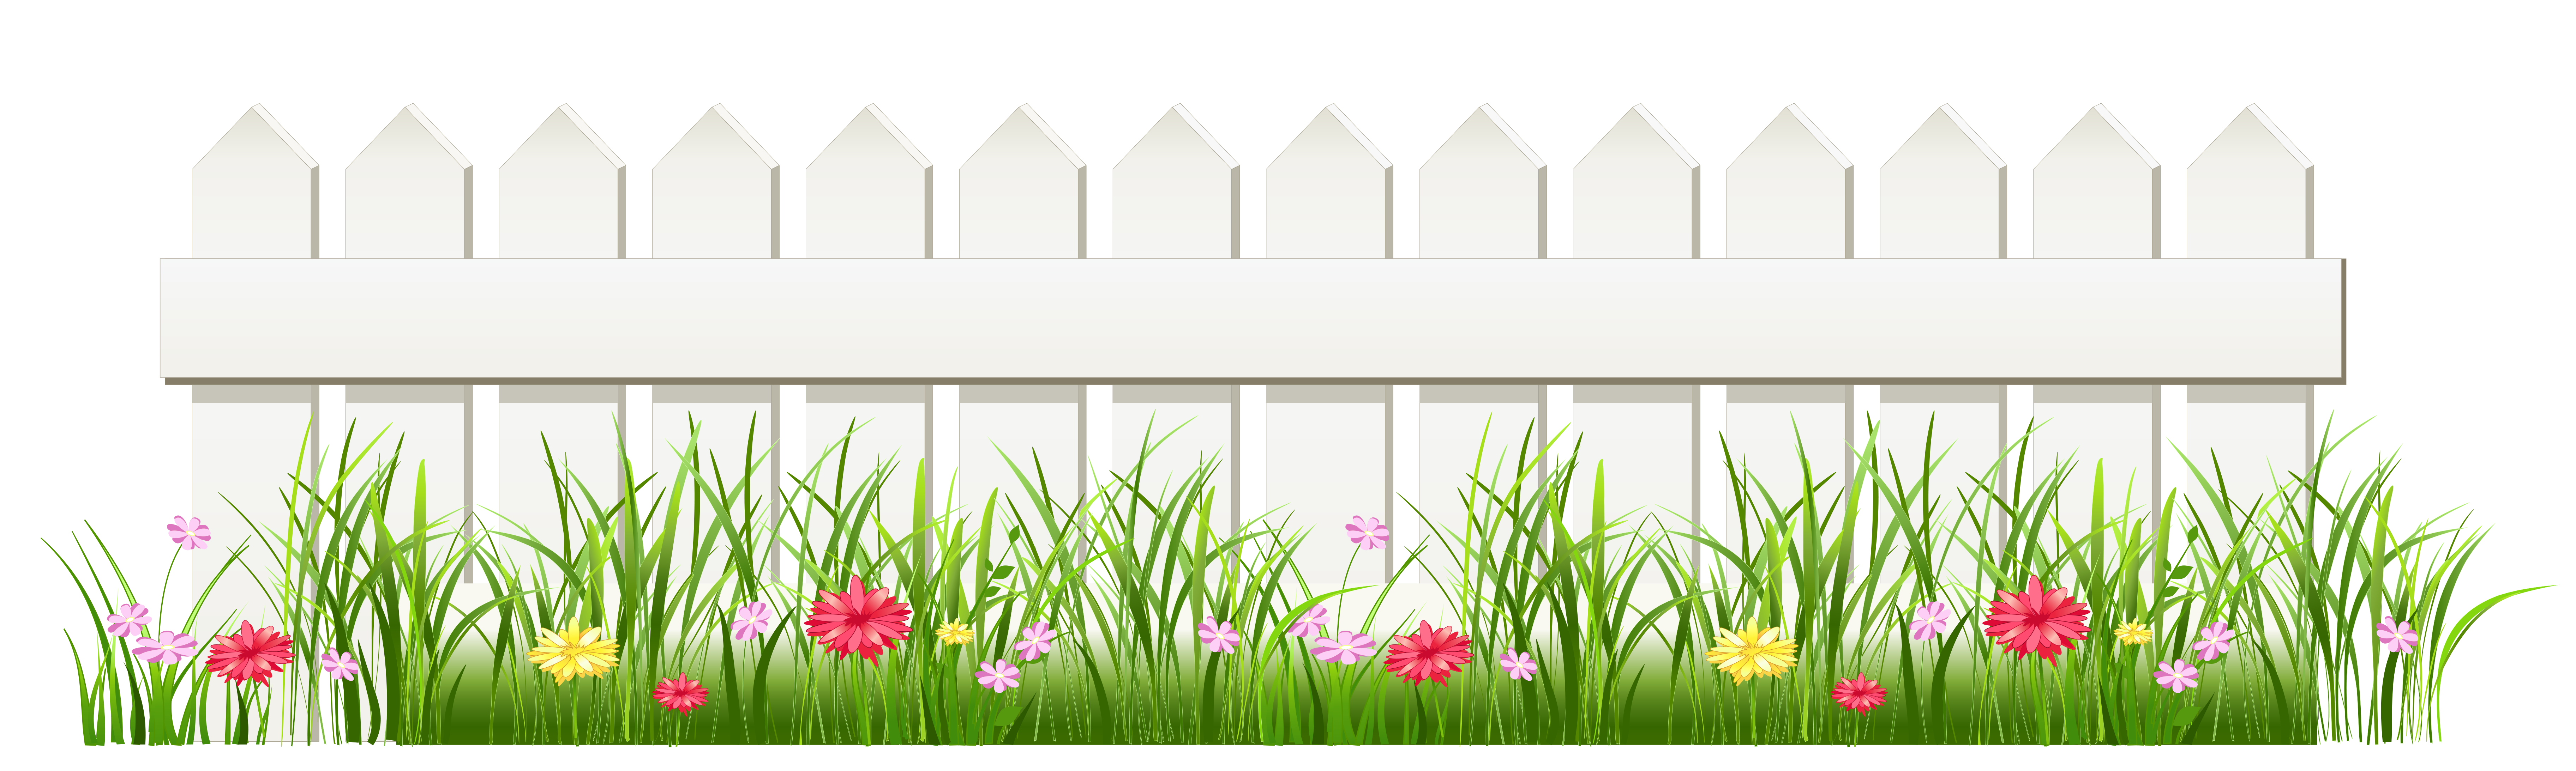 Background clipart fence Fence Grass White fence Transparent